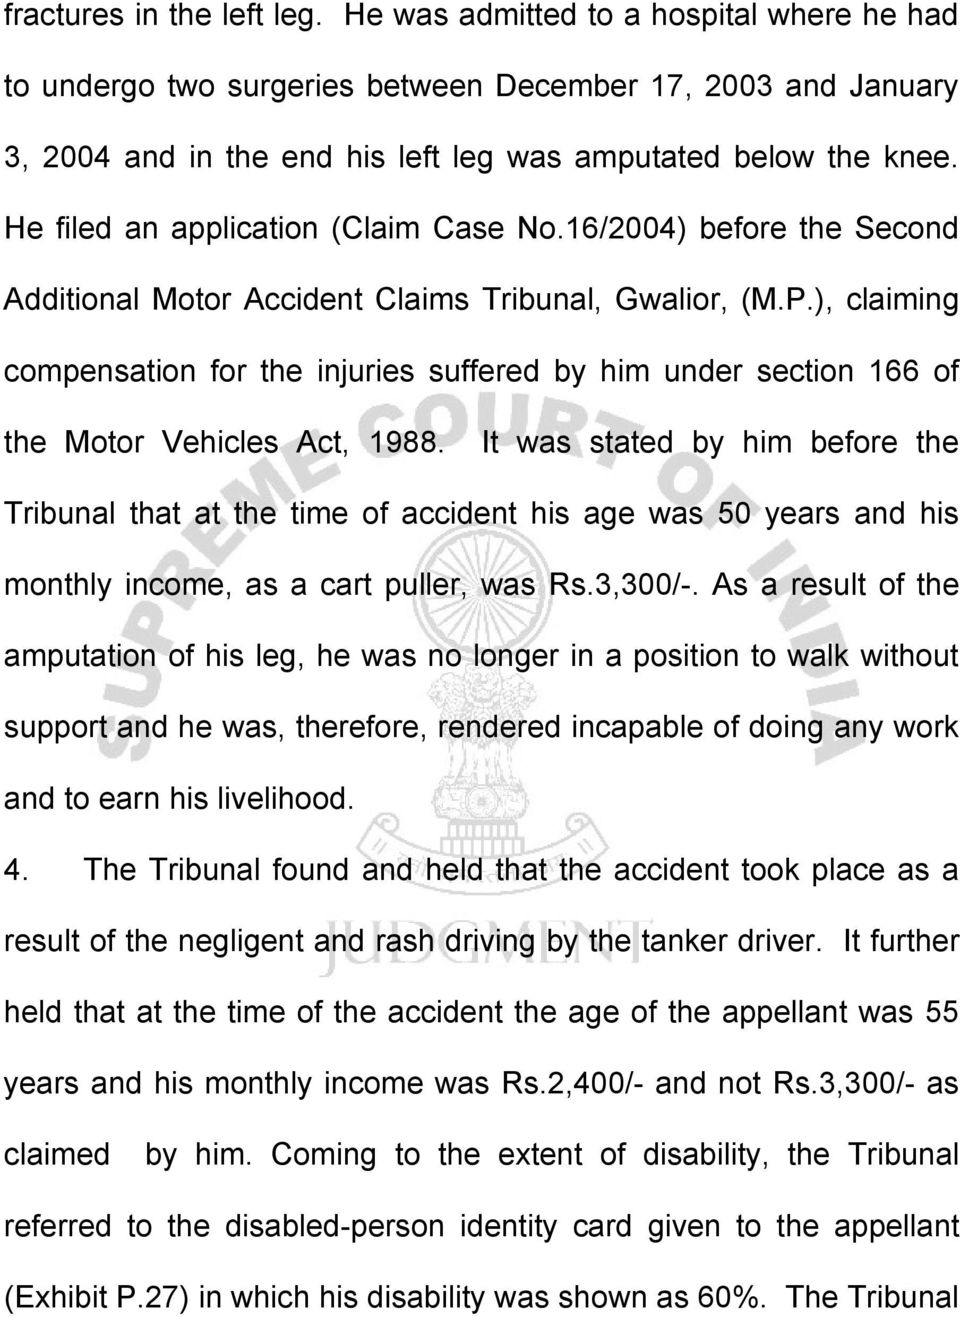 ), claiming compensation for the injuries suffered by him under section 166 of the Motor Vehicles Act, 1988.